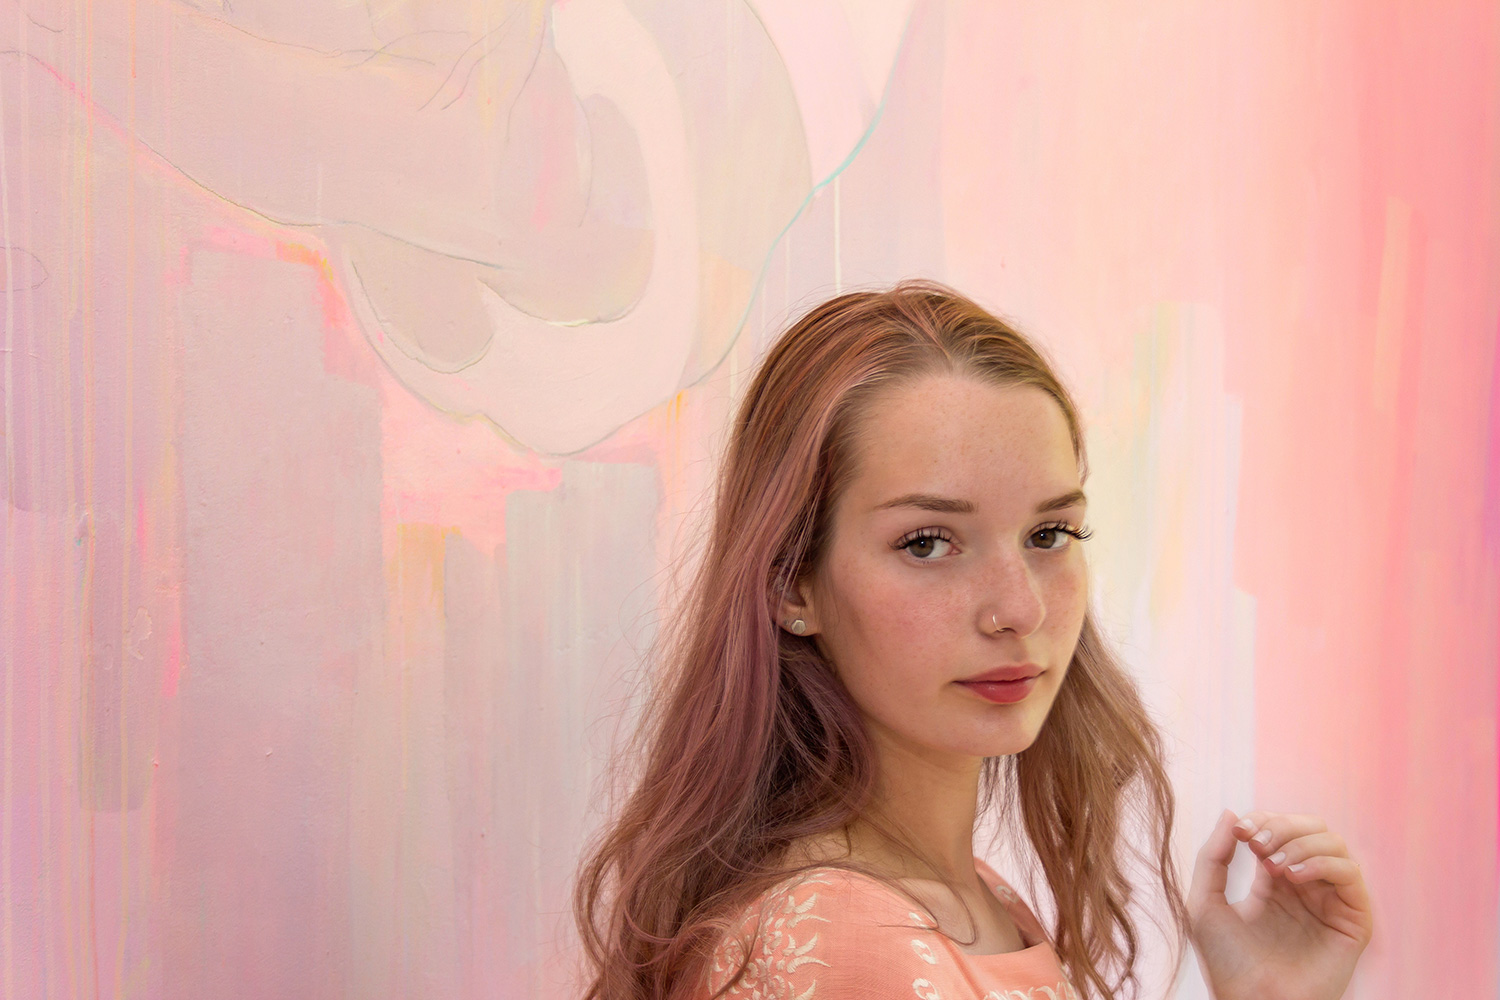 Pink pastel mural provides a pretty backdrop for this pastel haired model's portrait.